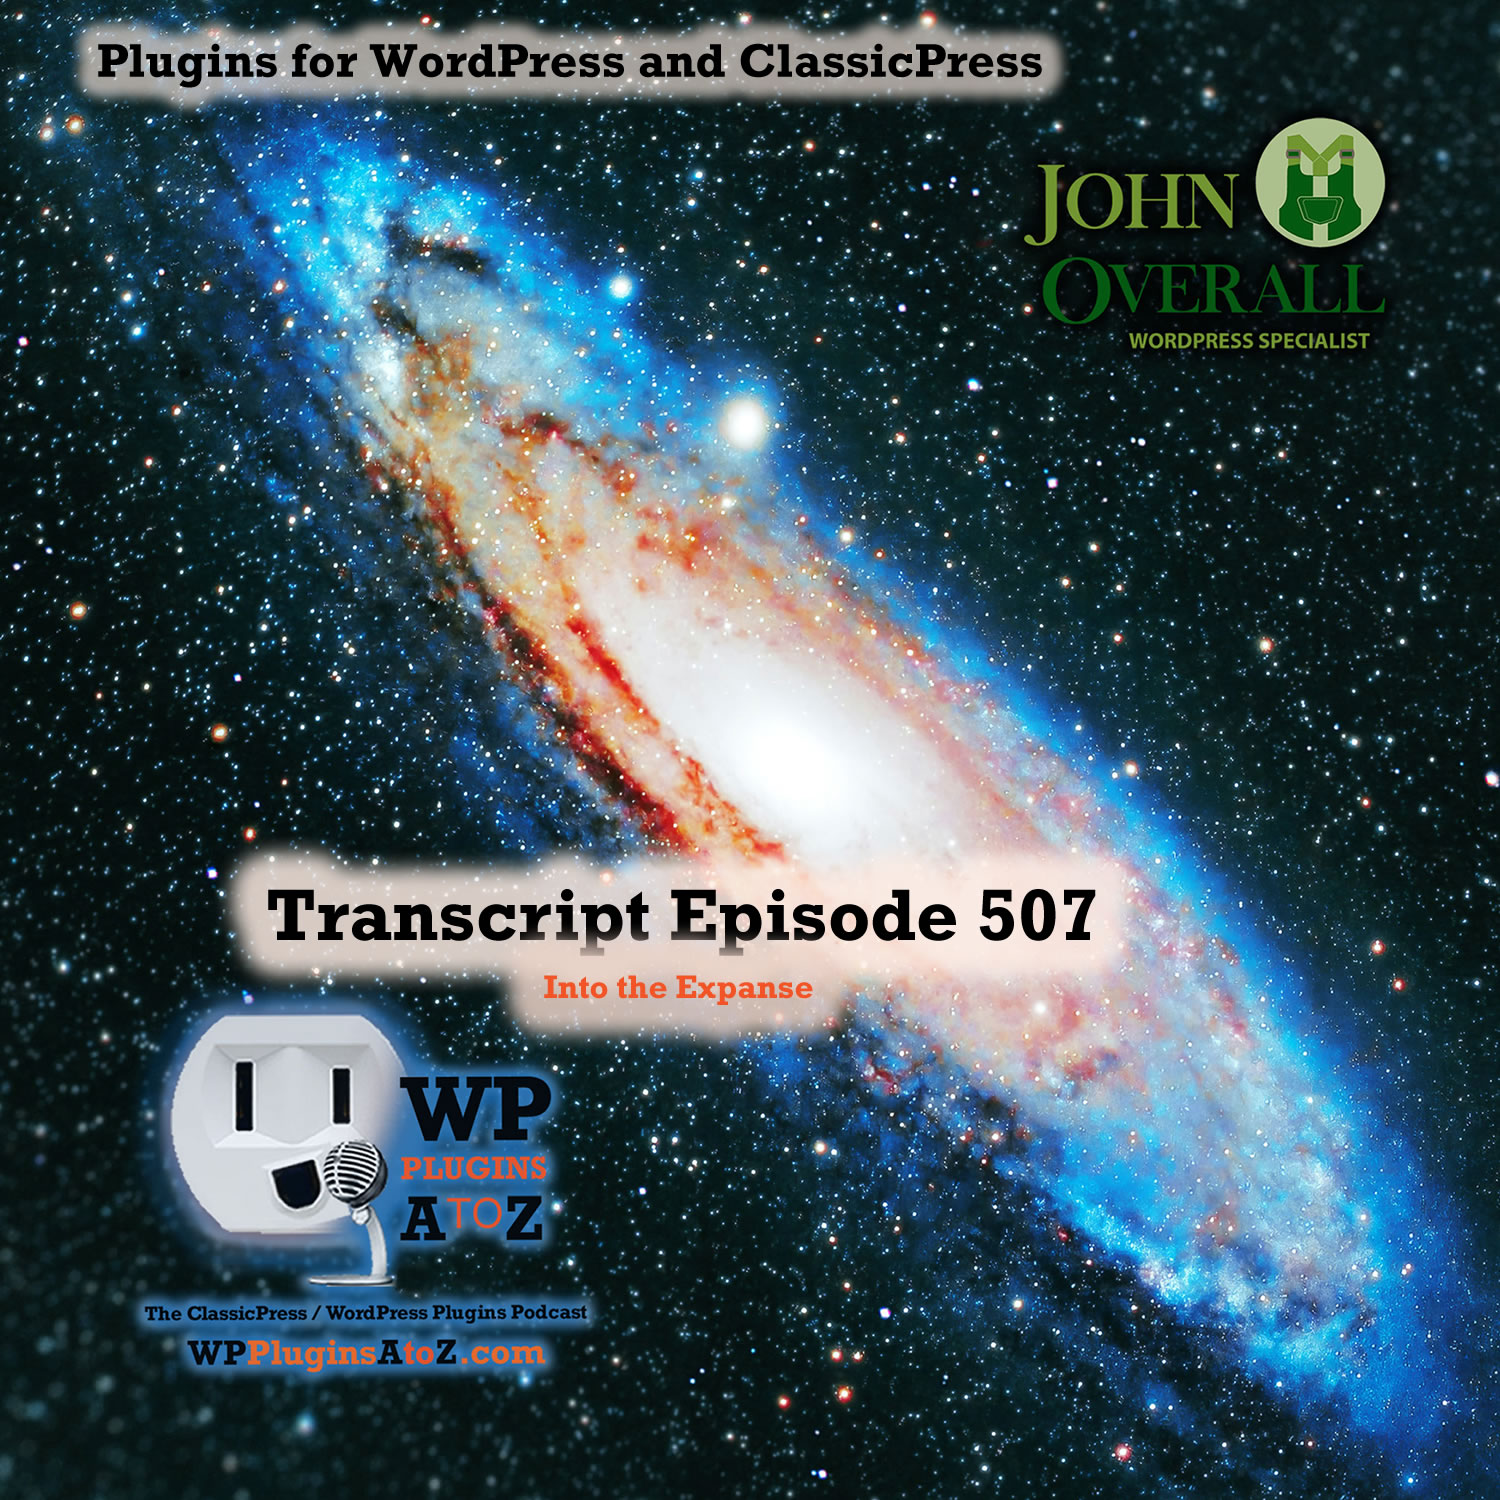 Into the Expanse It's Episode 507 - We have plugins for Stats, Links, Photos, Privacy Chat, Plugin notes...., and ClassicPress Options. It's all coming up on WordPress Plugins A-Z!